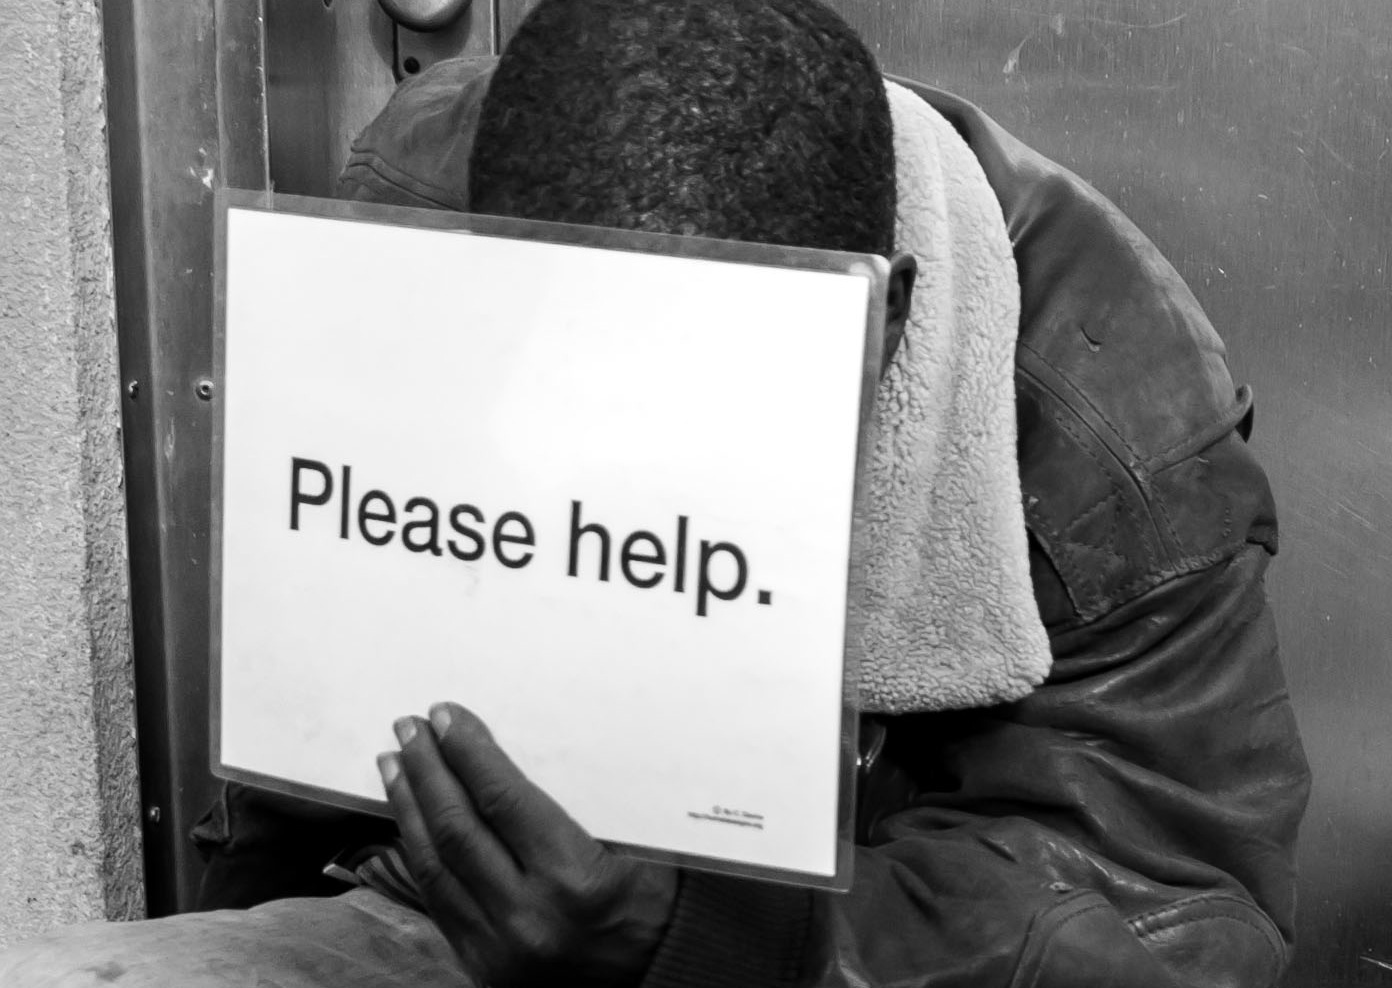 Please help. by bradhoc, on Flickr